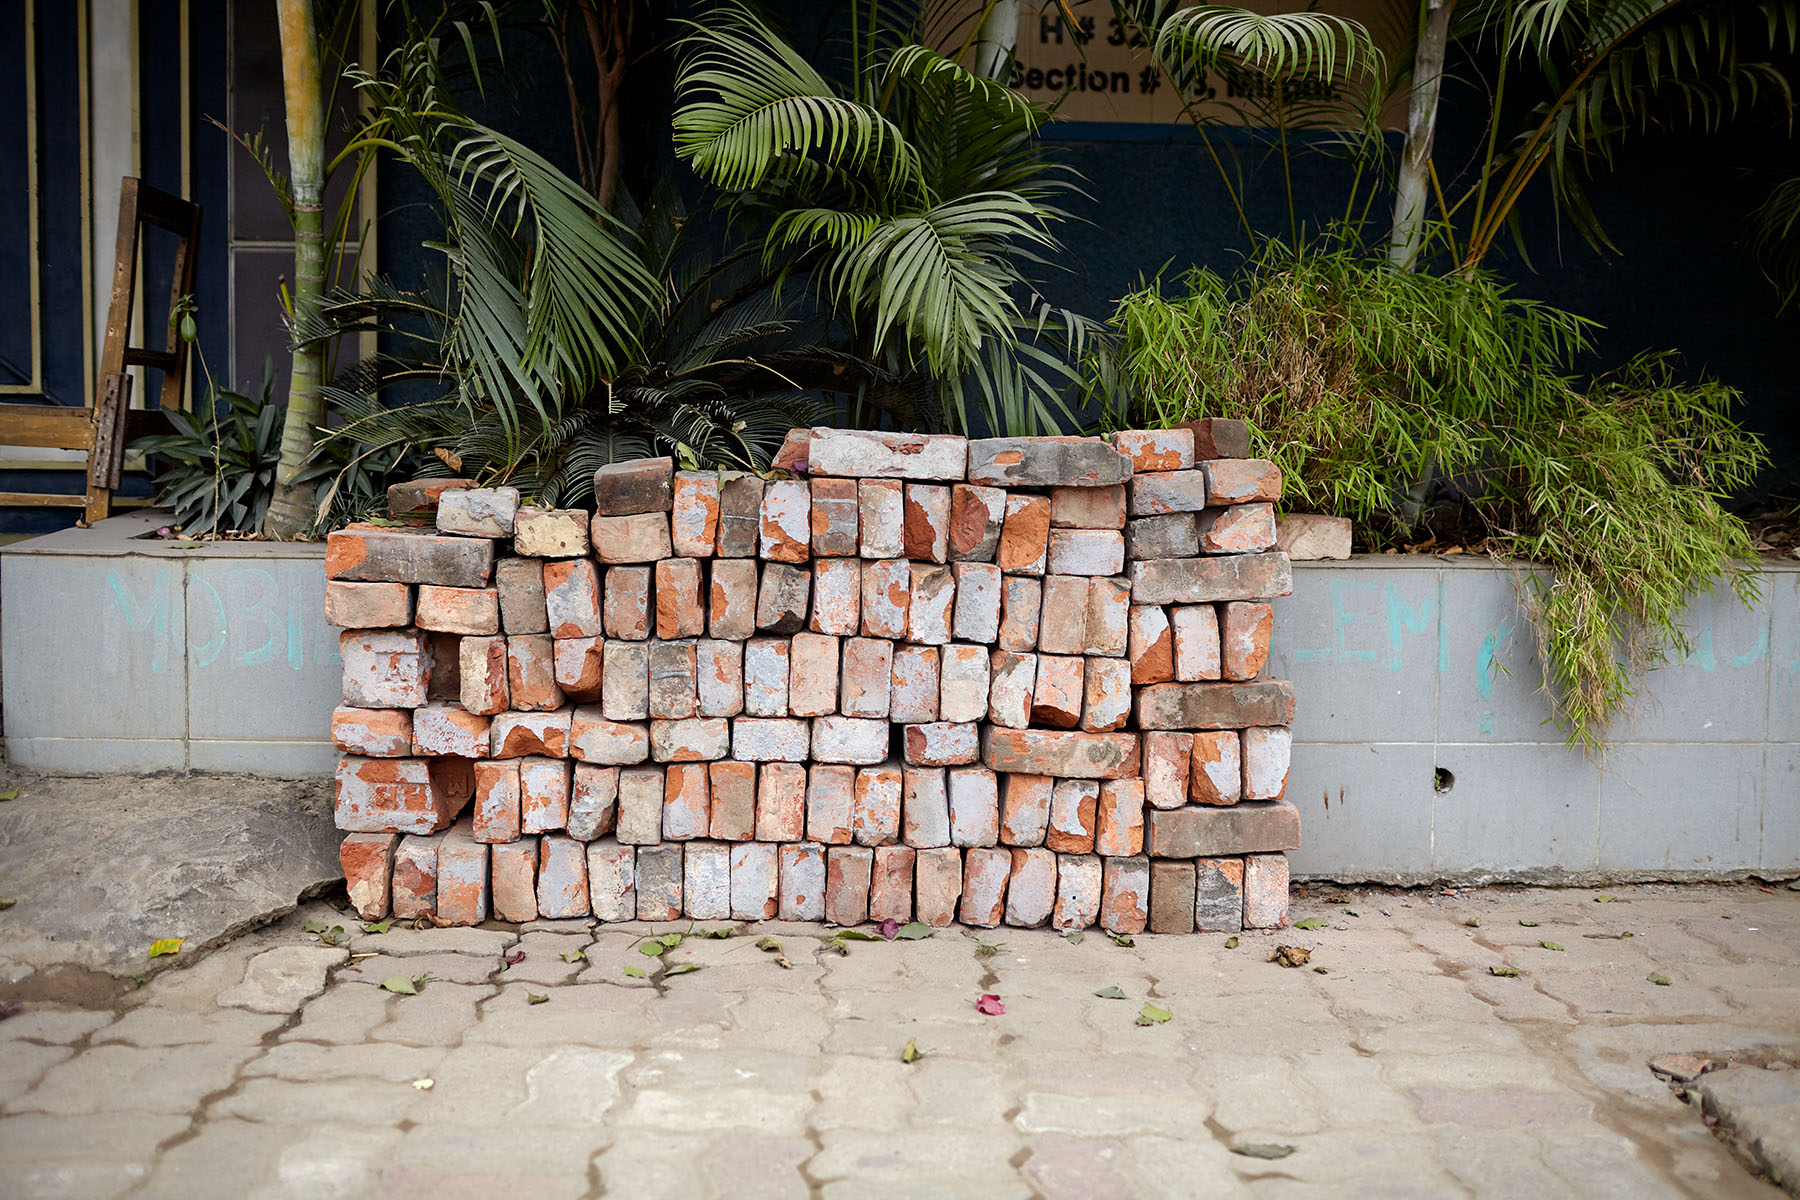 Bricks_MG_0583